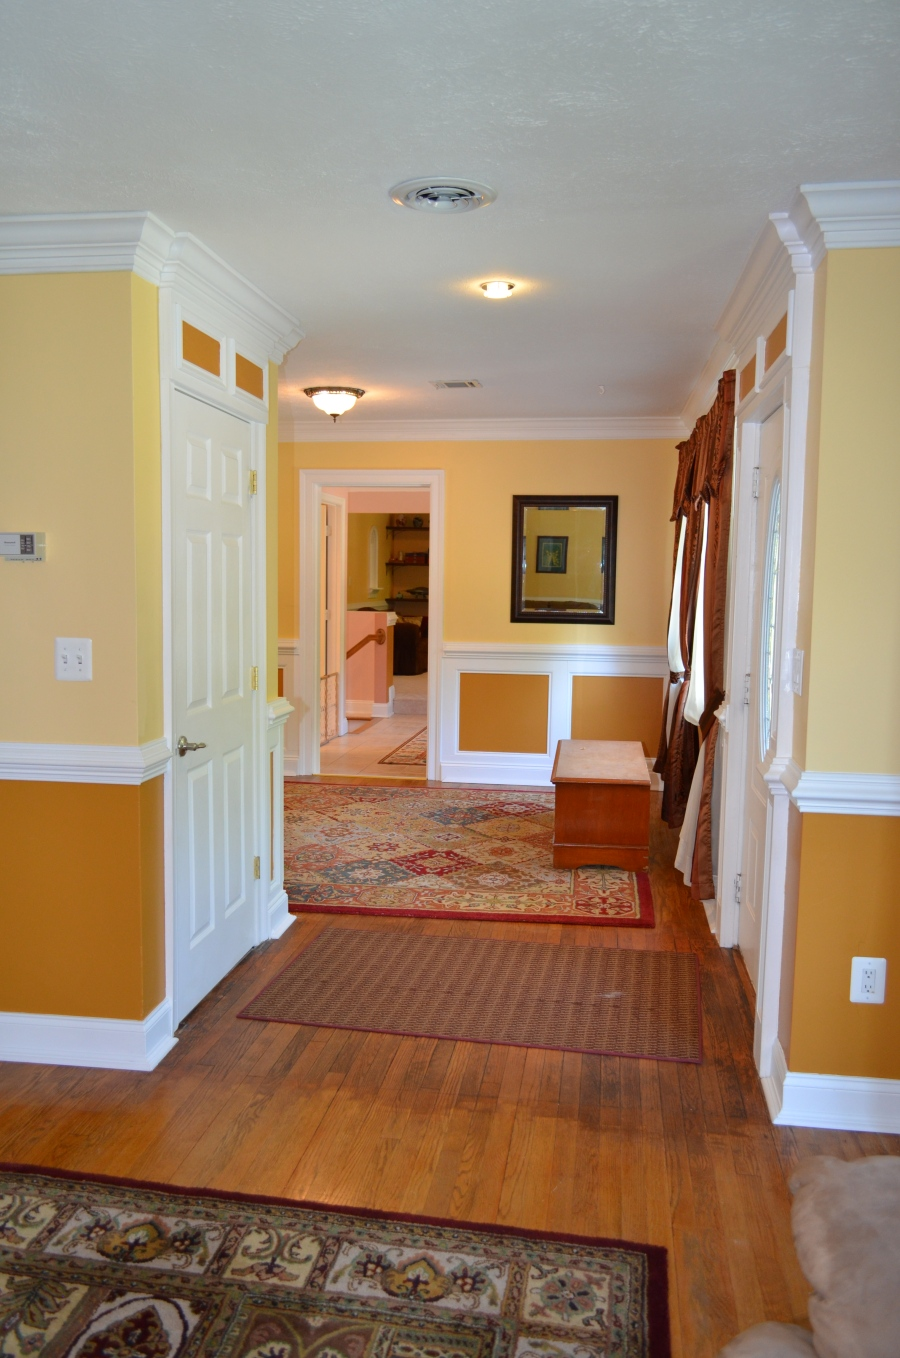 Entry foyer and family room.